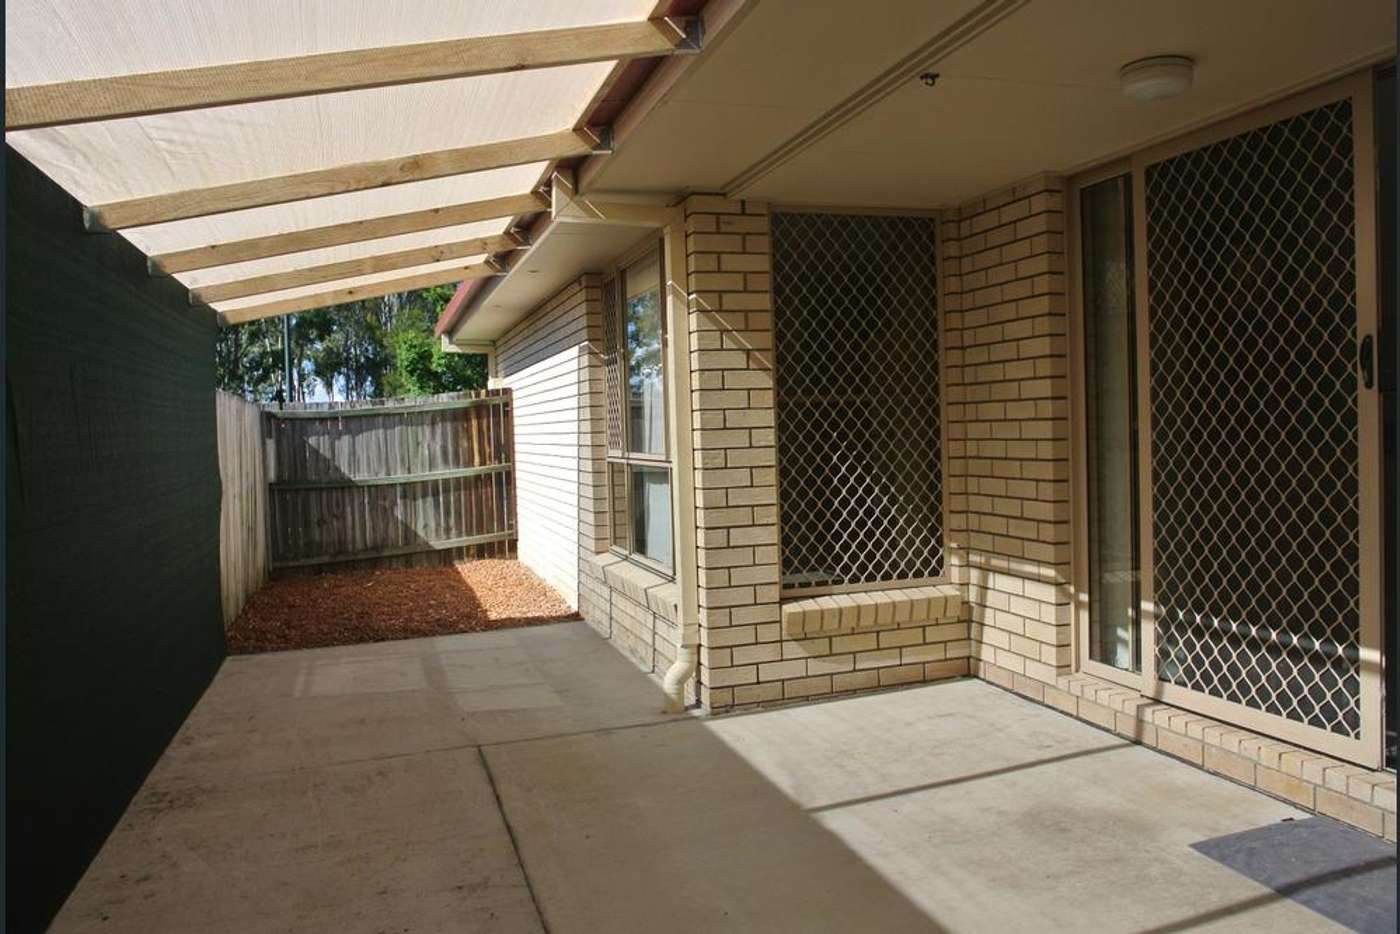 Main view of Homely house listing, 7 Vine Court, Kippa-ring QLD 4021